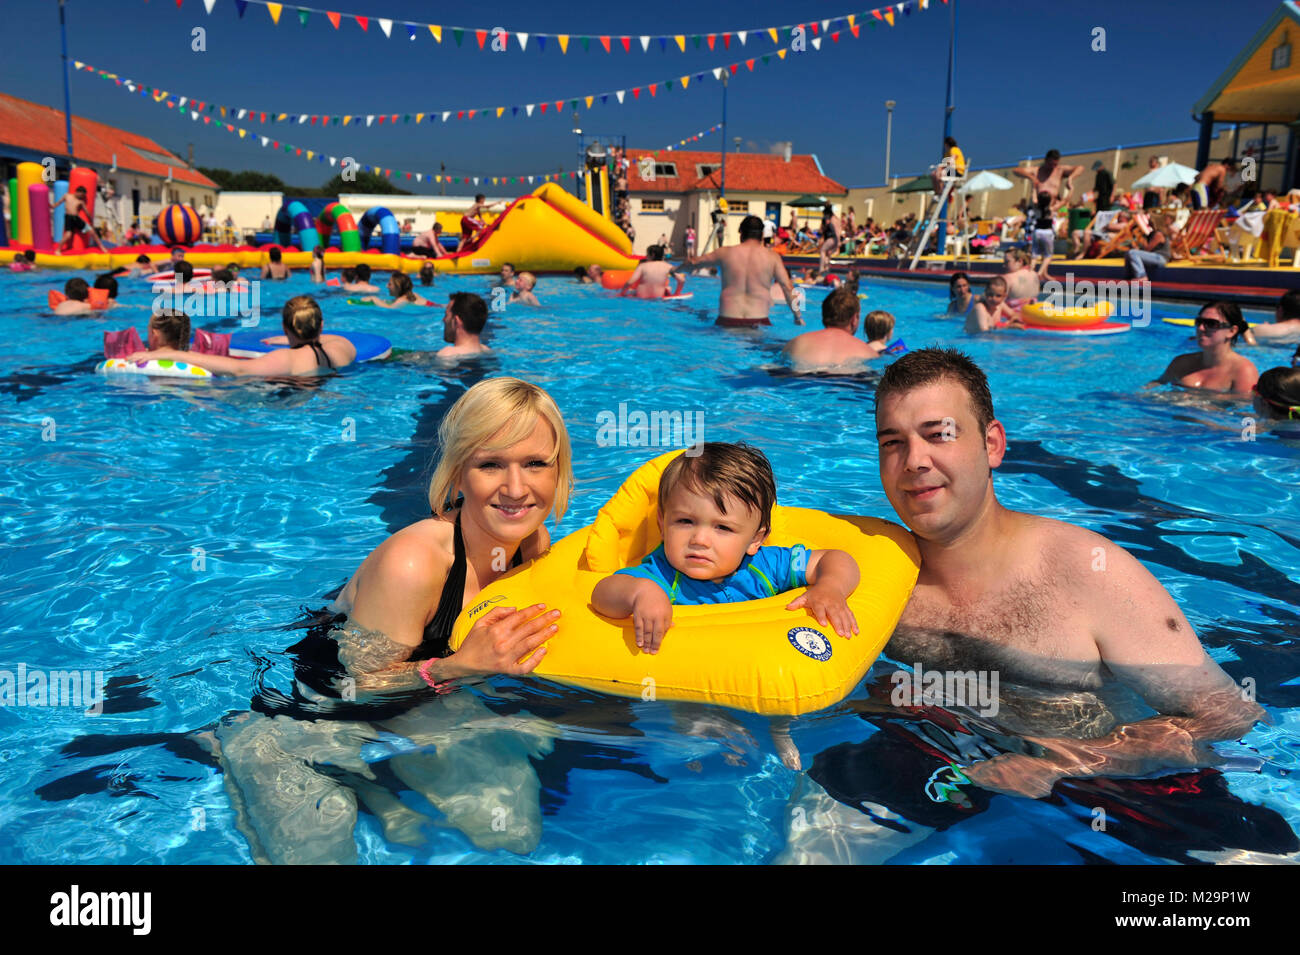 Olympic Size Pool Stock Photos Amp Olympic Size Pool Stock